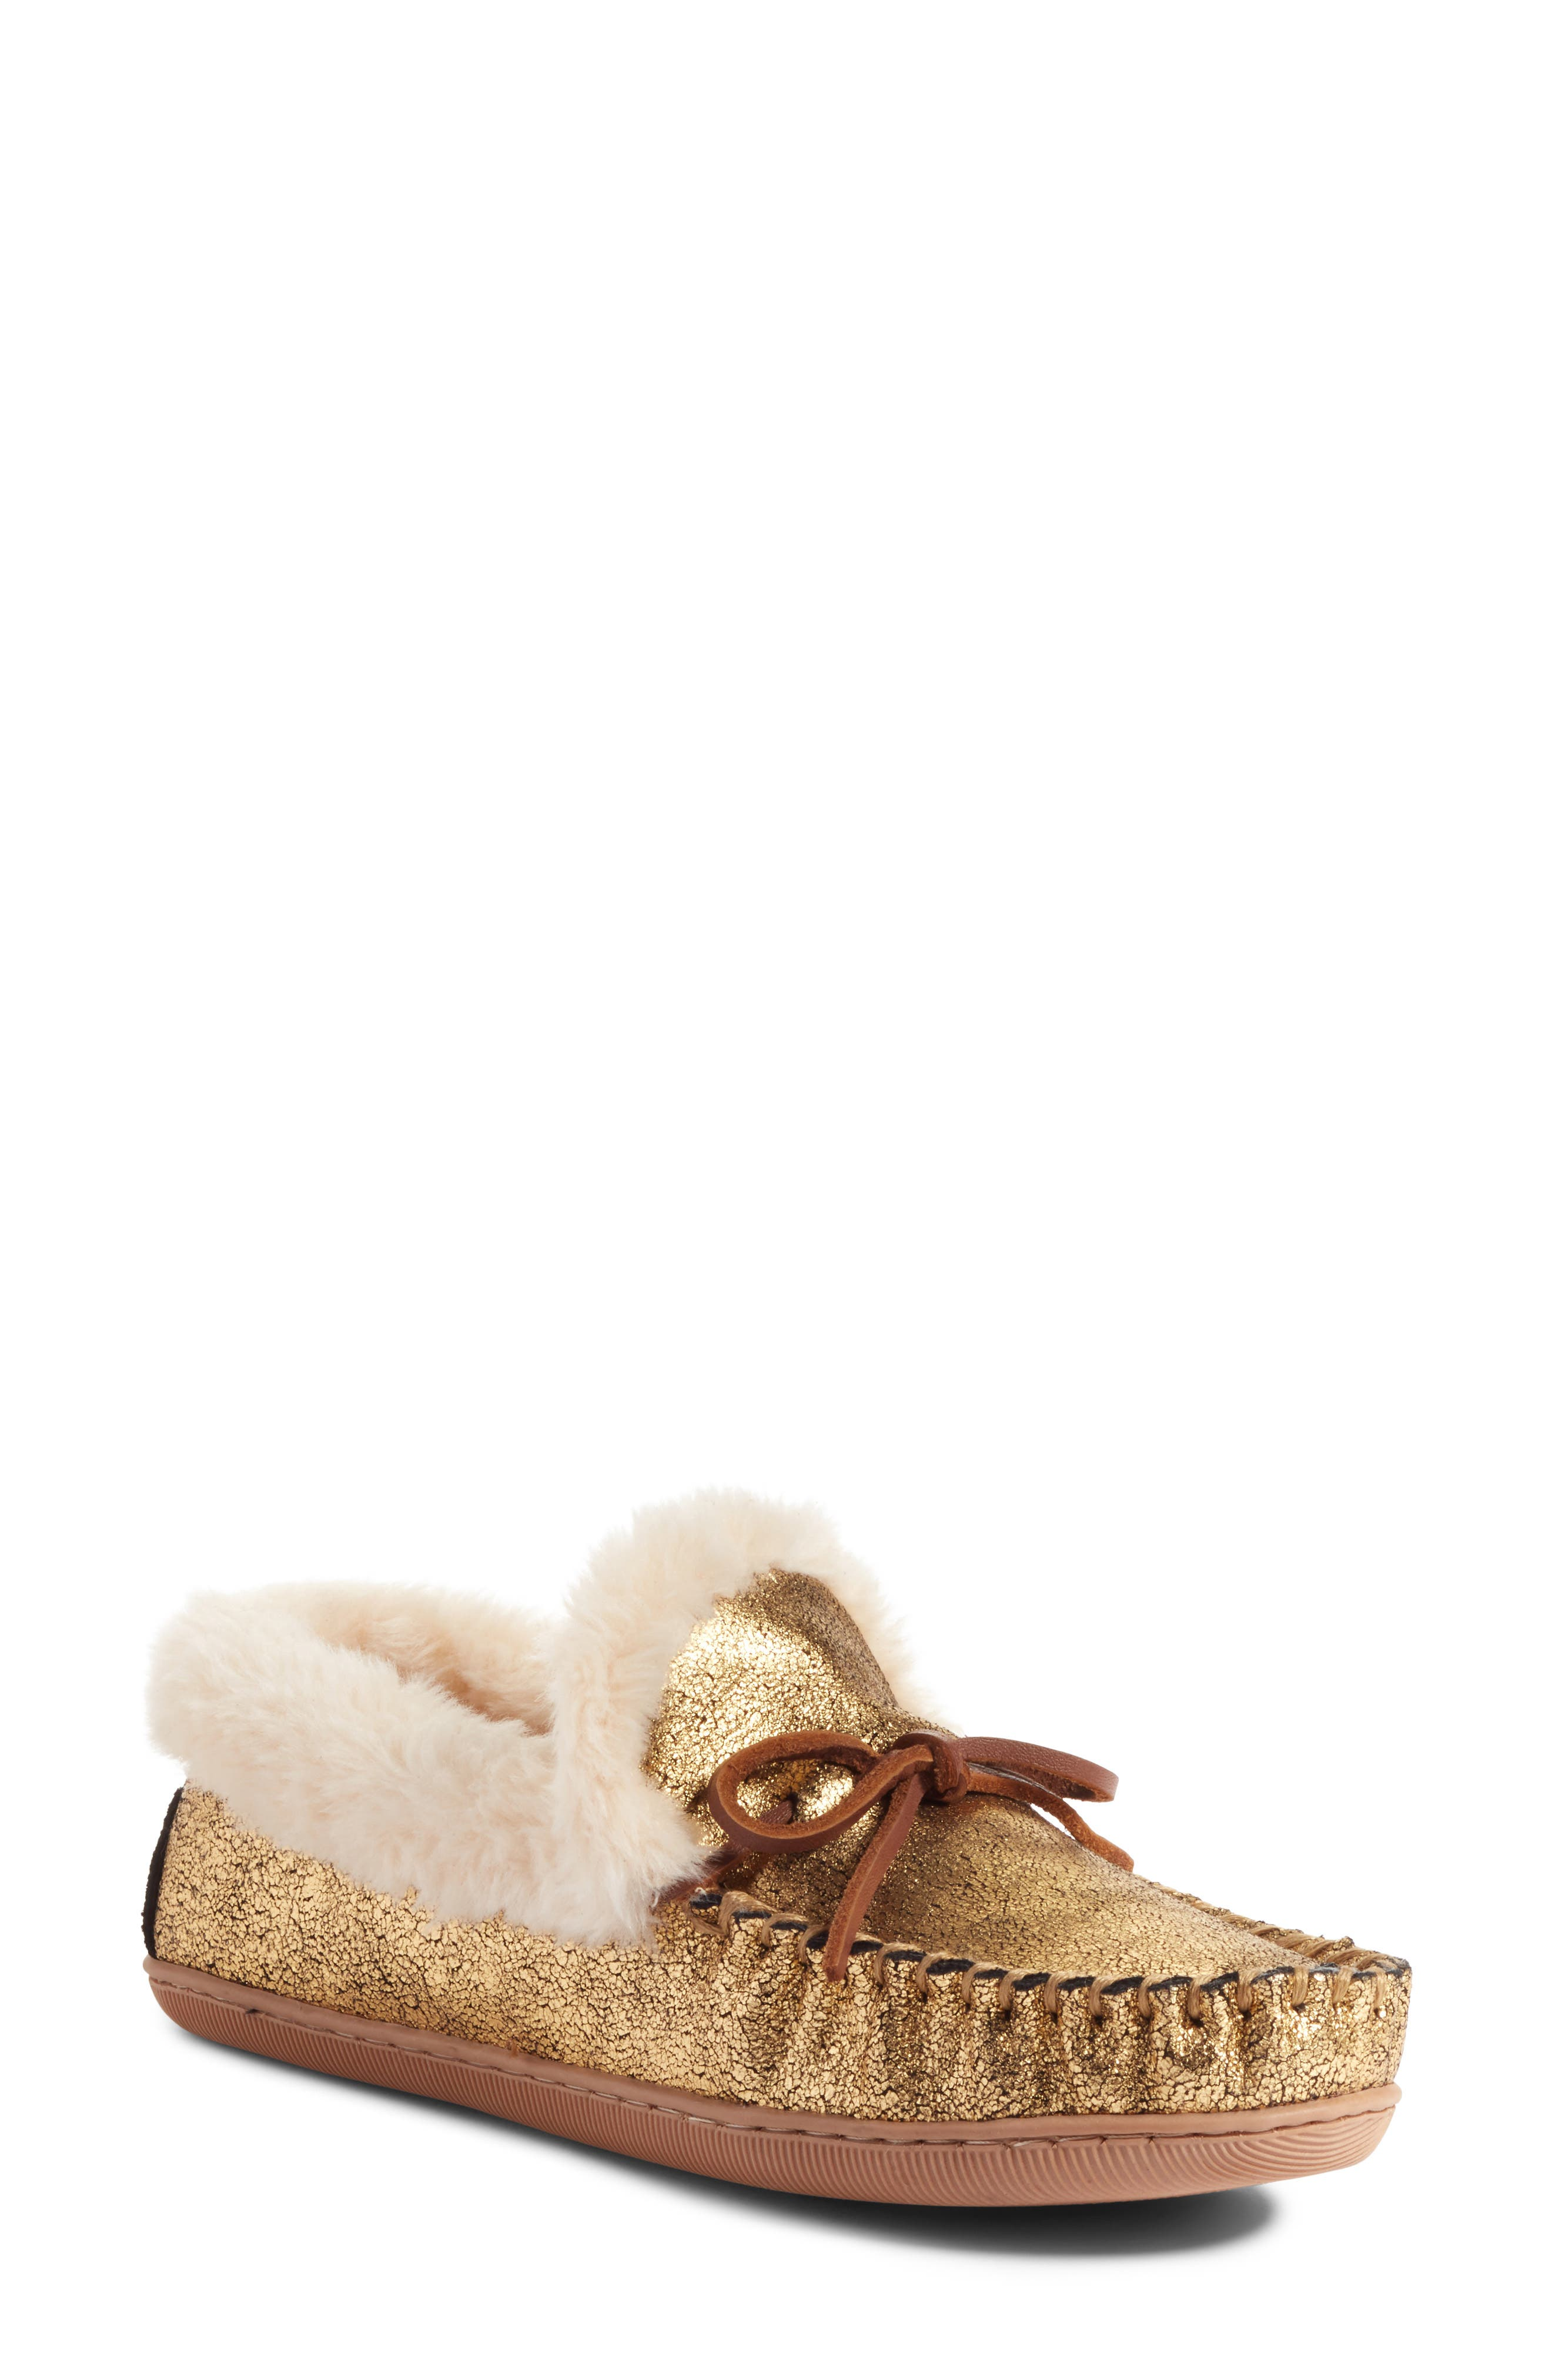 J.Crew Metallic Moccasin Lodge Slipper (Women)